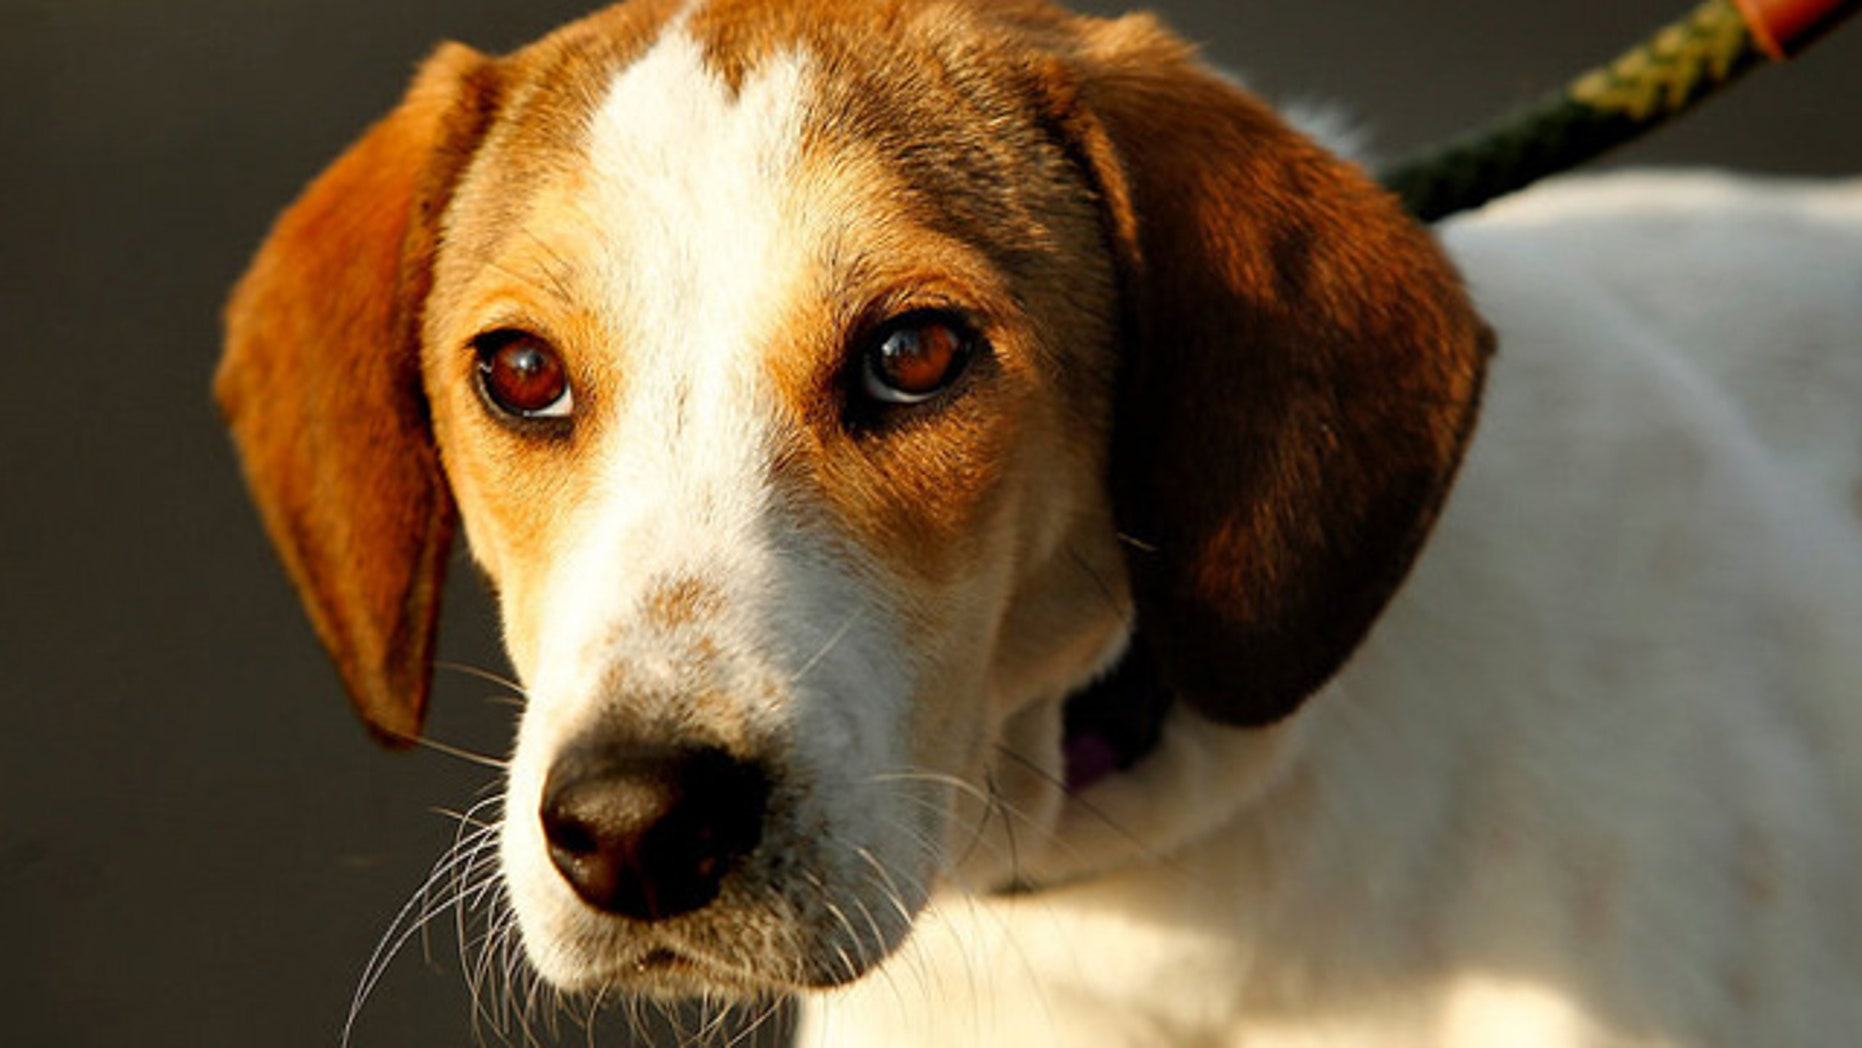 Oct. 26, 2011: A beagle named Daniel, after surviving an Alabama pound's gas chamber, is taken to New Jersey for adoption by Eleventh Hour Rescue.